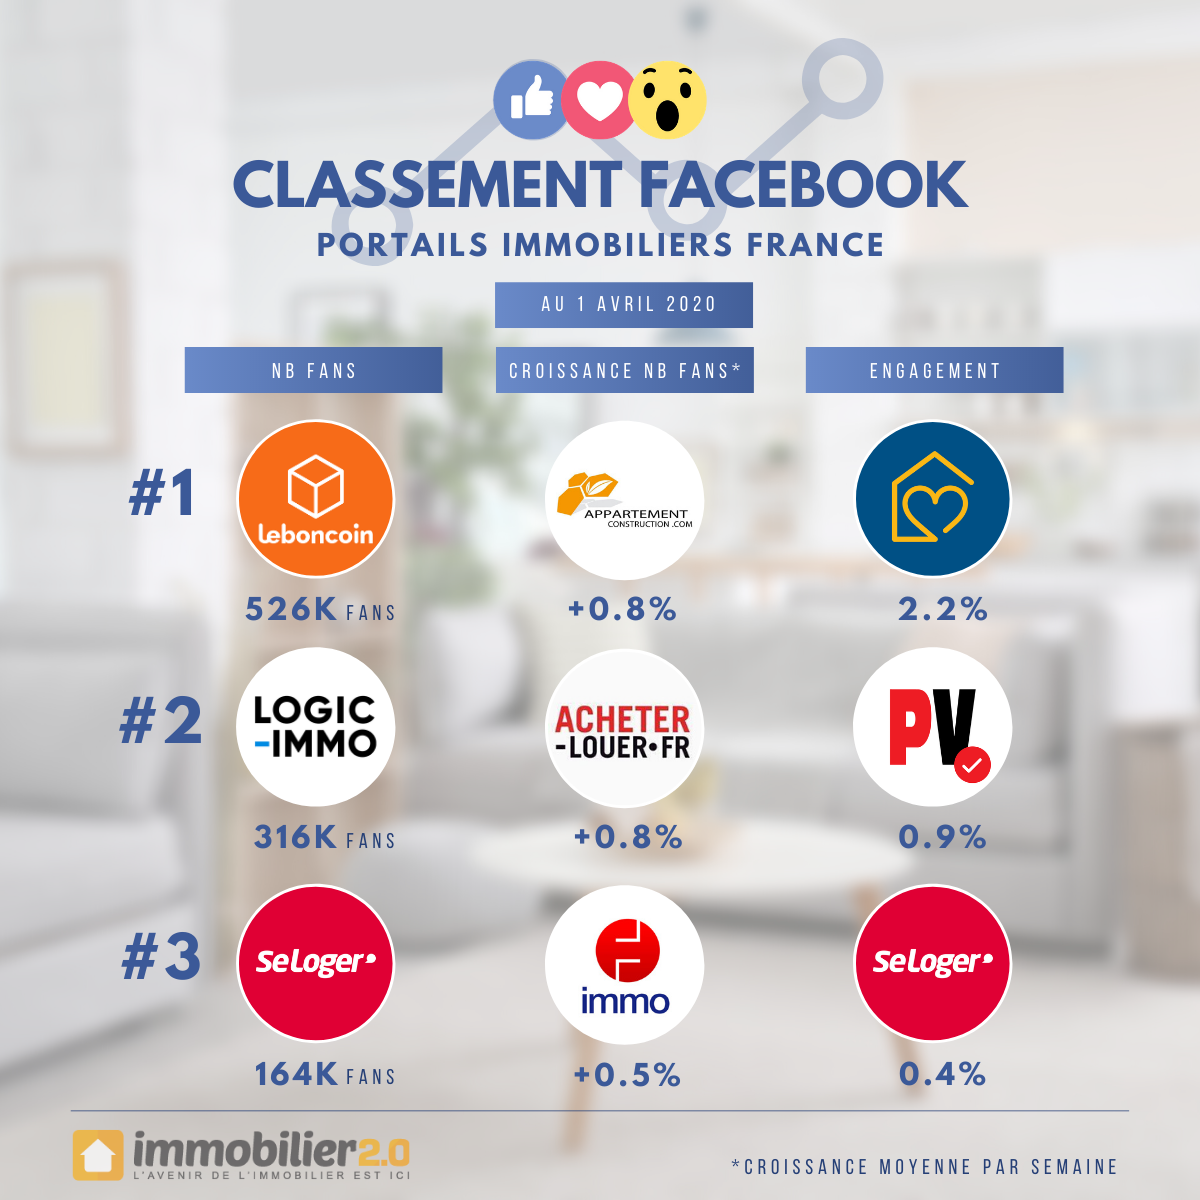 Classement Facebook Portails Immobiliers France Avril 2020